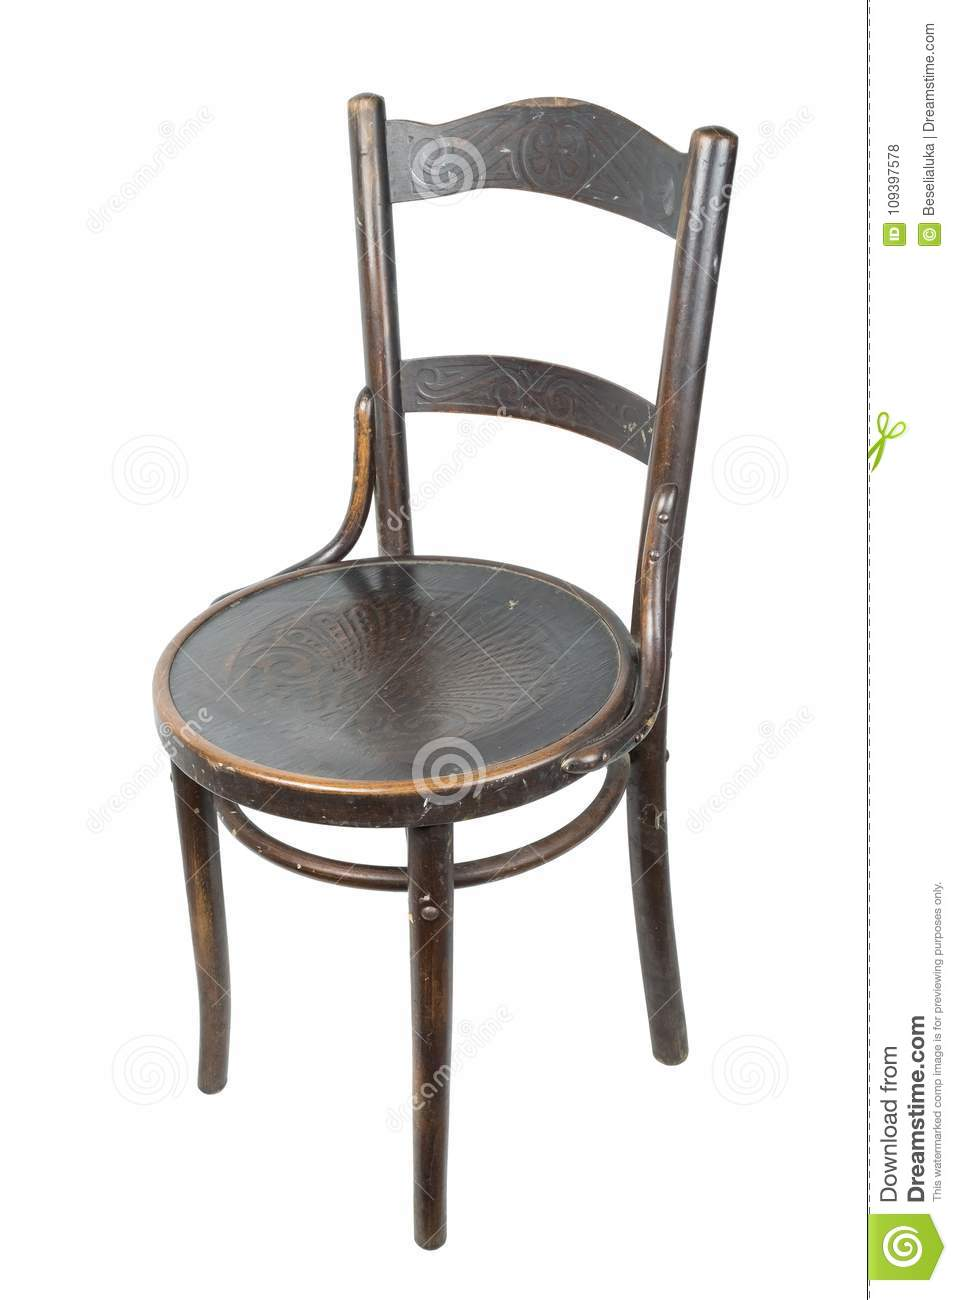 vintage wooden chairs plastic folding wholesale an old chair stock photo image of brown soiled on a white background isolated